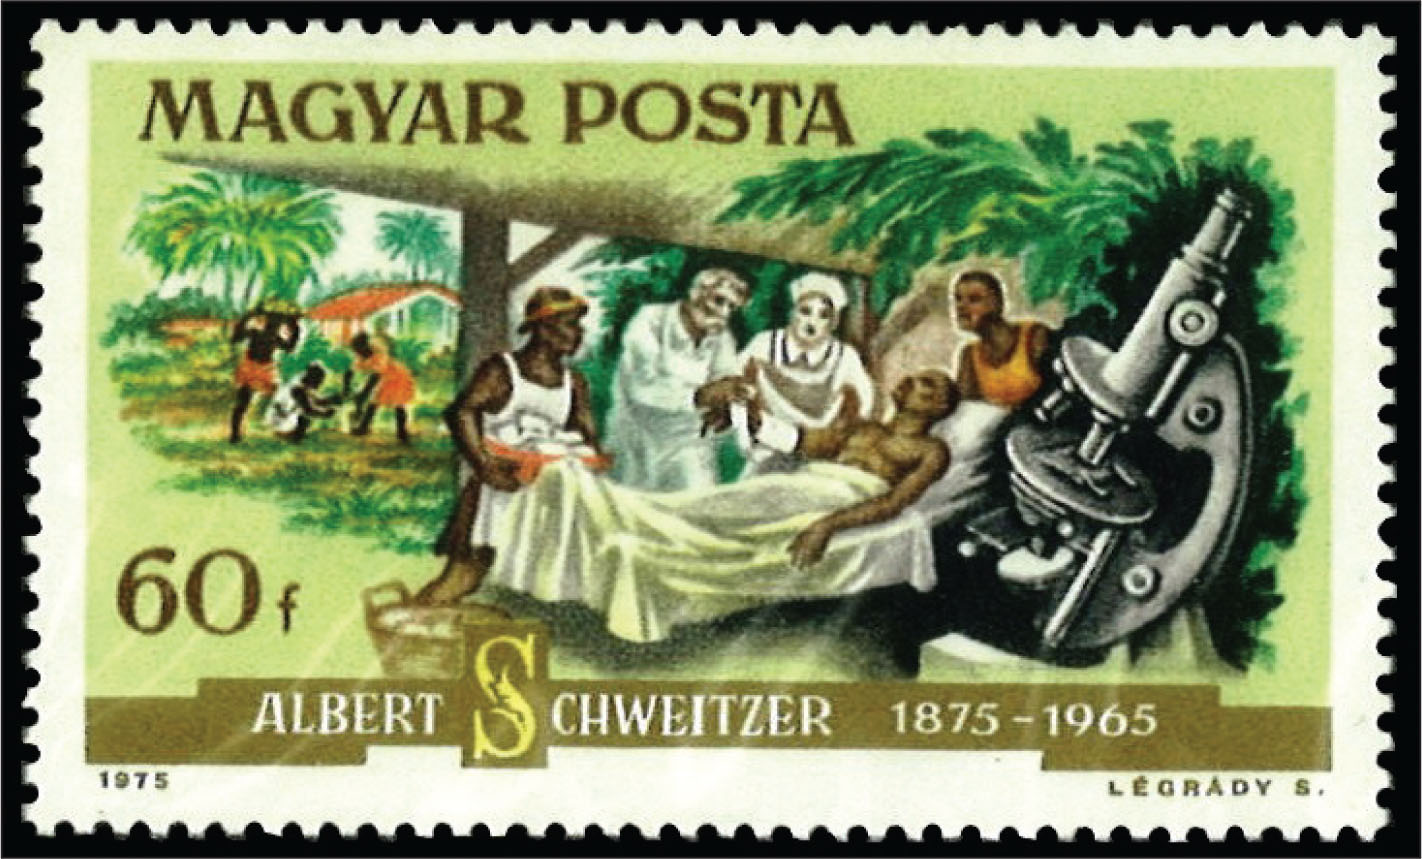 Dr. Albert Schweitzer was awarded numerous awards and honors for his humanitarian activities in Africa.